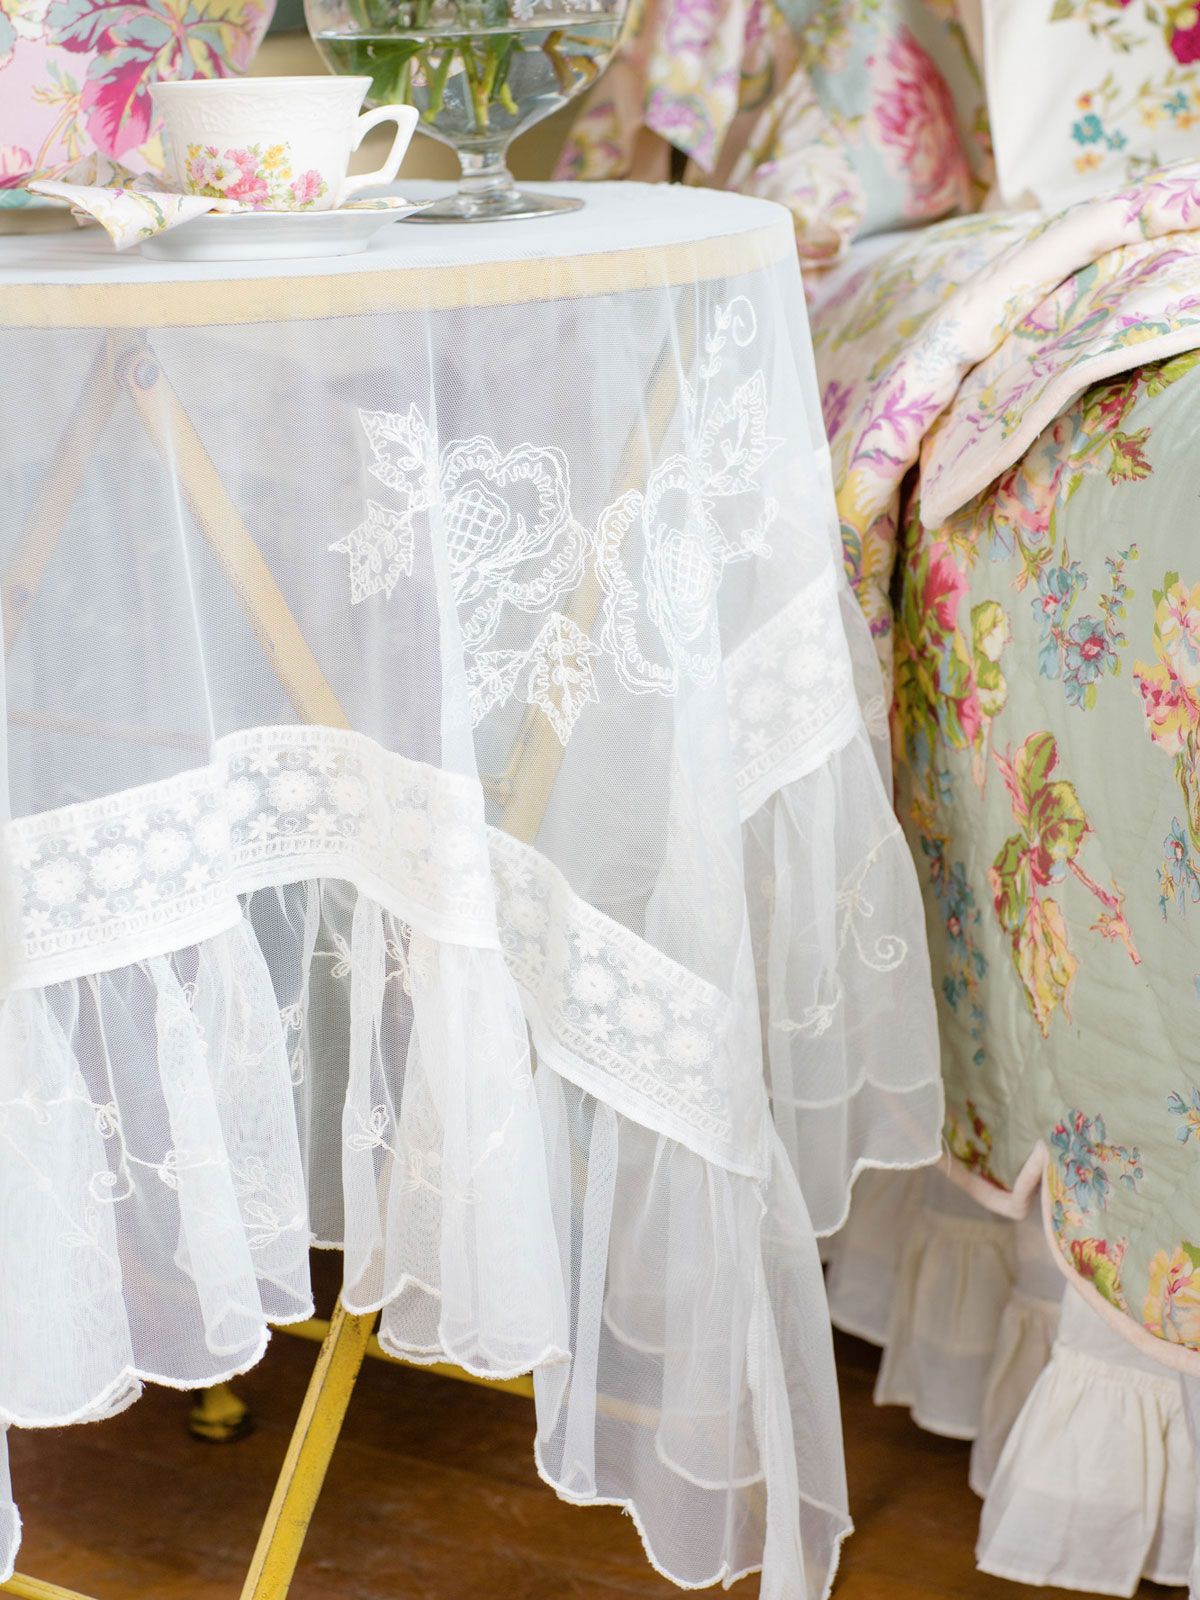 Angelic Embroidered Tablecloth | Linens & Kitchen, Tablecloths ...